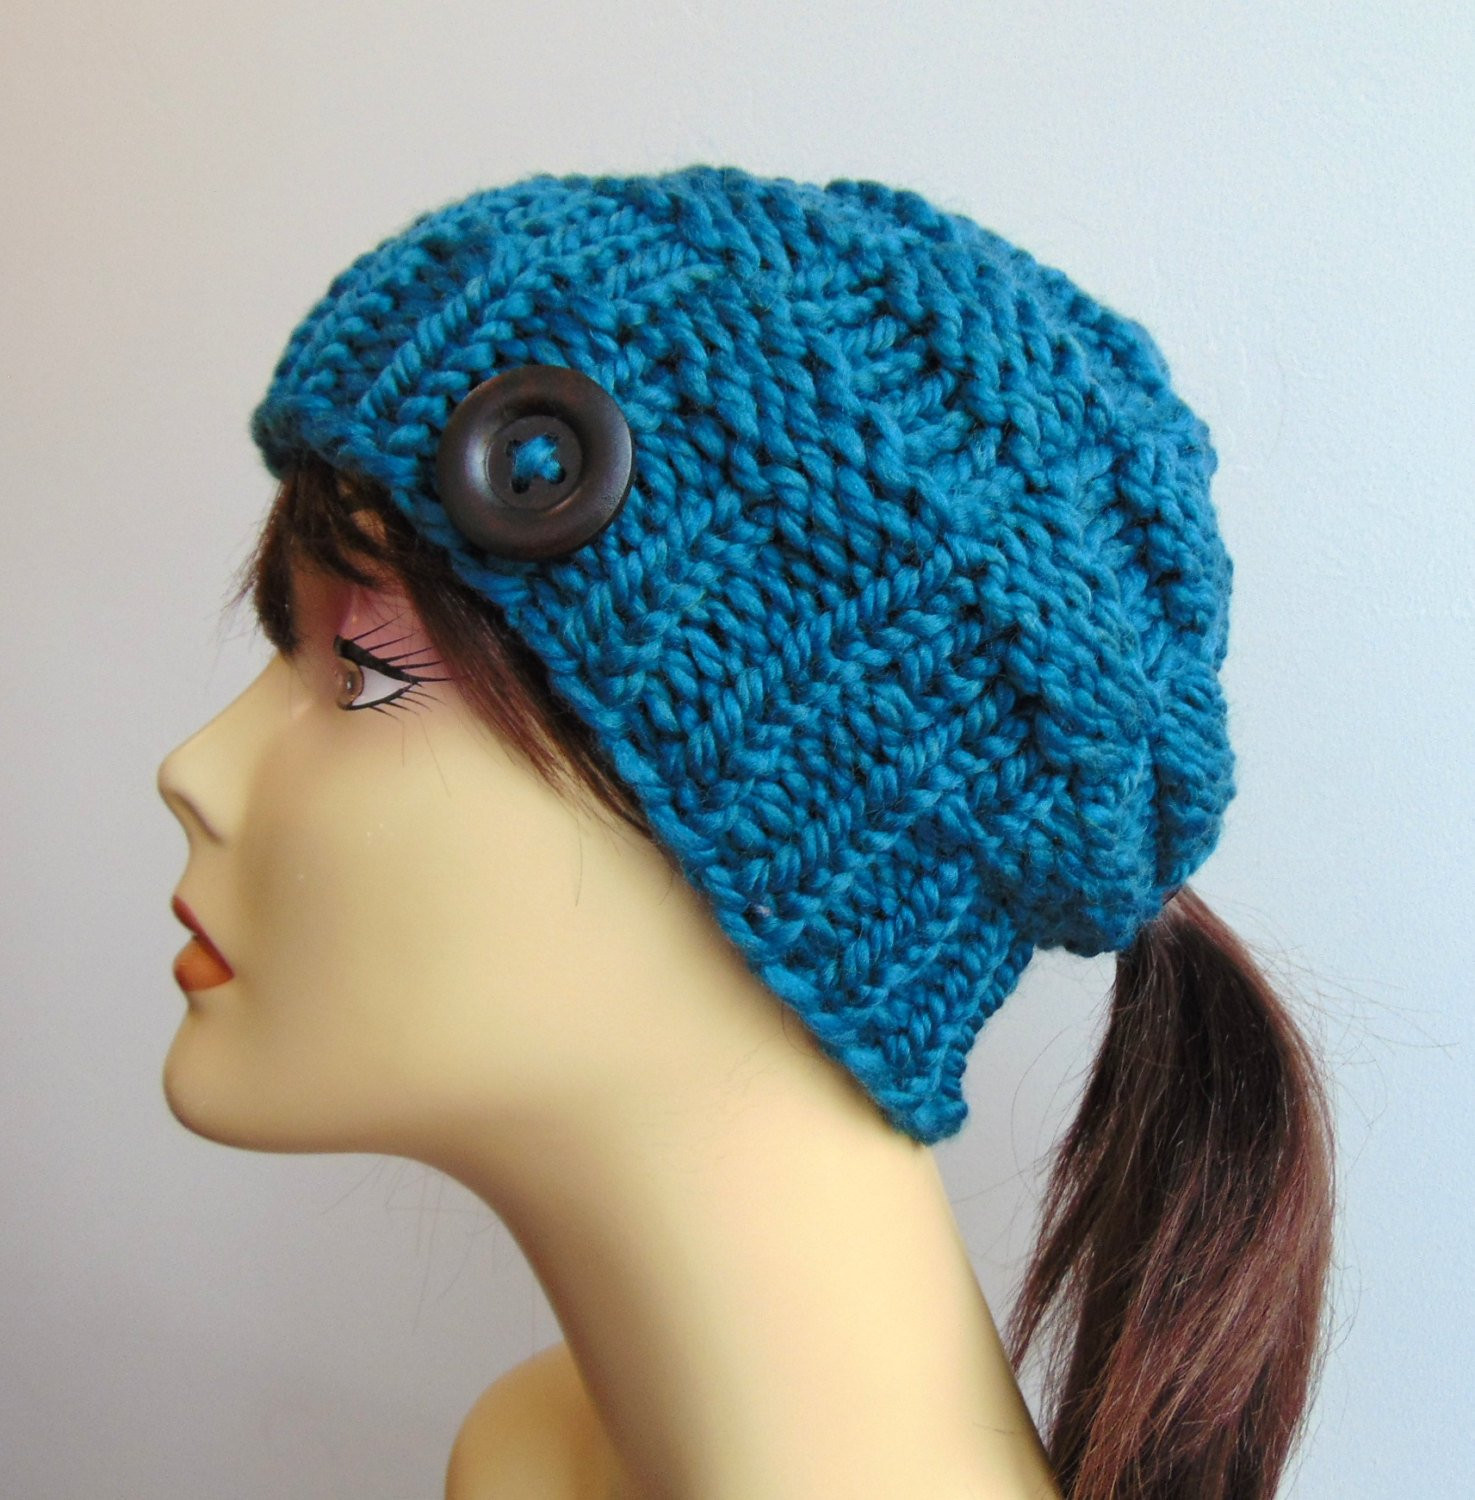 New Chunky Knit Teal Blue Pony Tail Hat Beanie Ponytail Hole Beanie Hat with Ponytail Hole Of Incredible 47 Photos Beanie Hat with Ponytail Hole